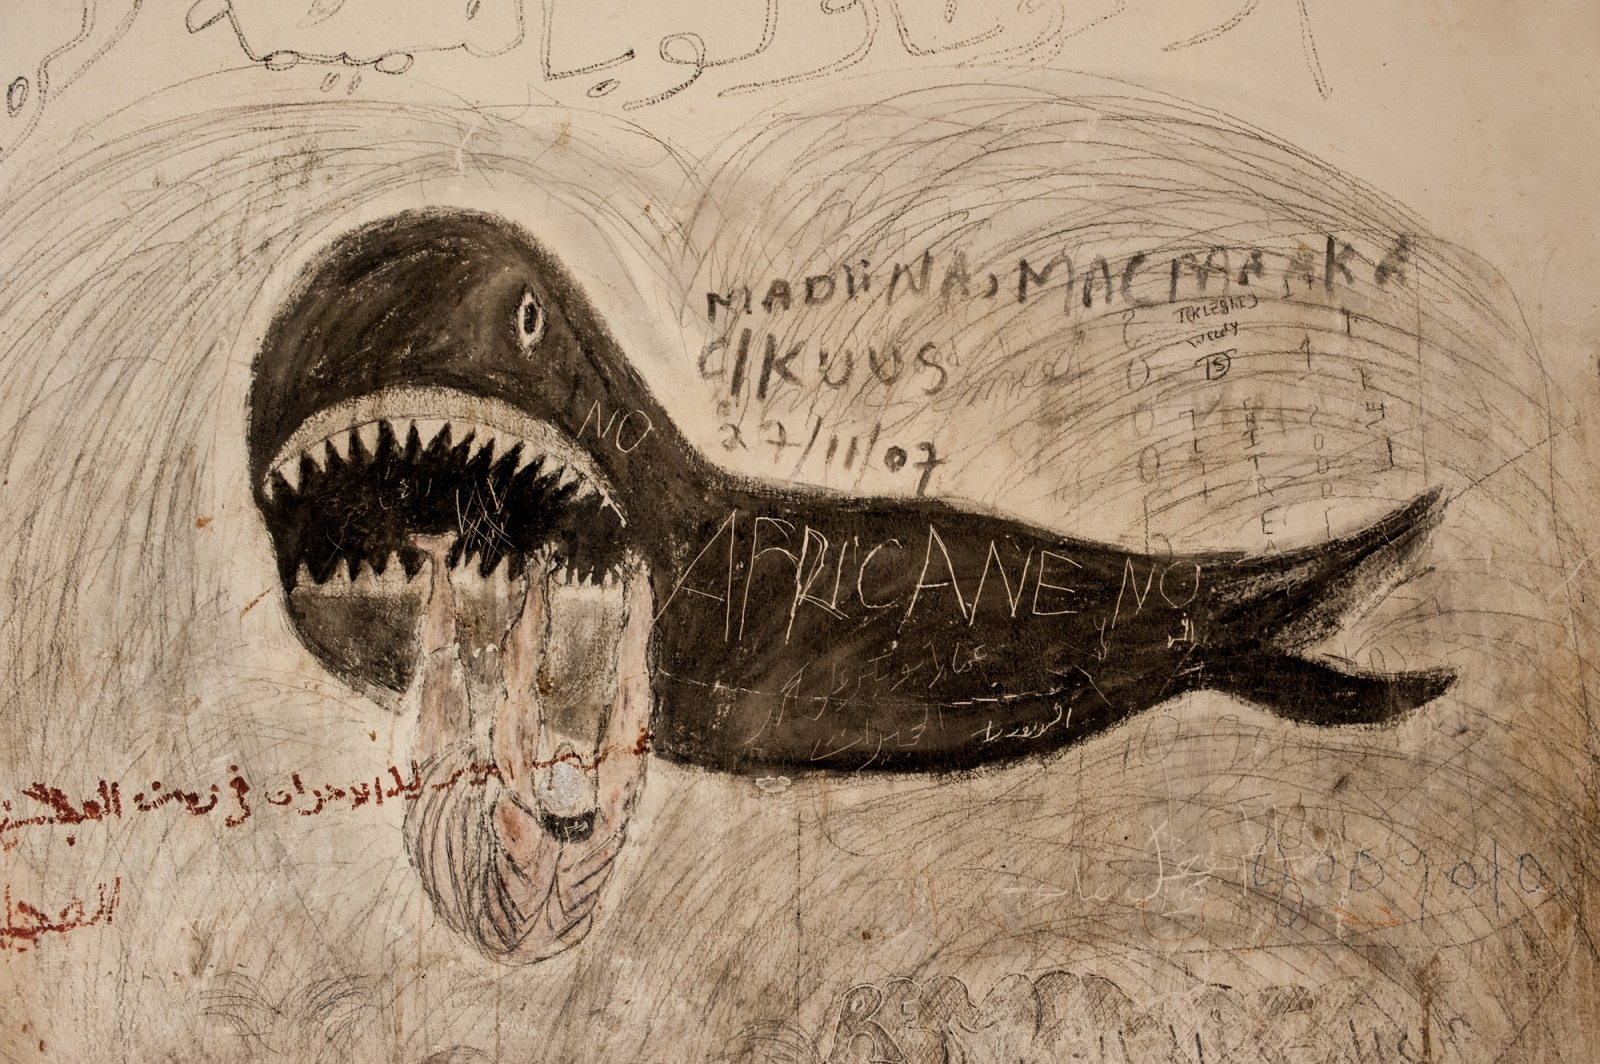 Art and Documentary Photography - Loading libya_refugee_beilvert_detention_camp_drawing.jpg